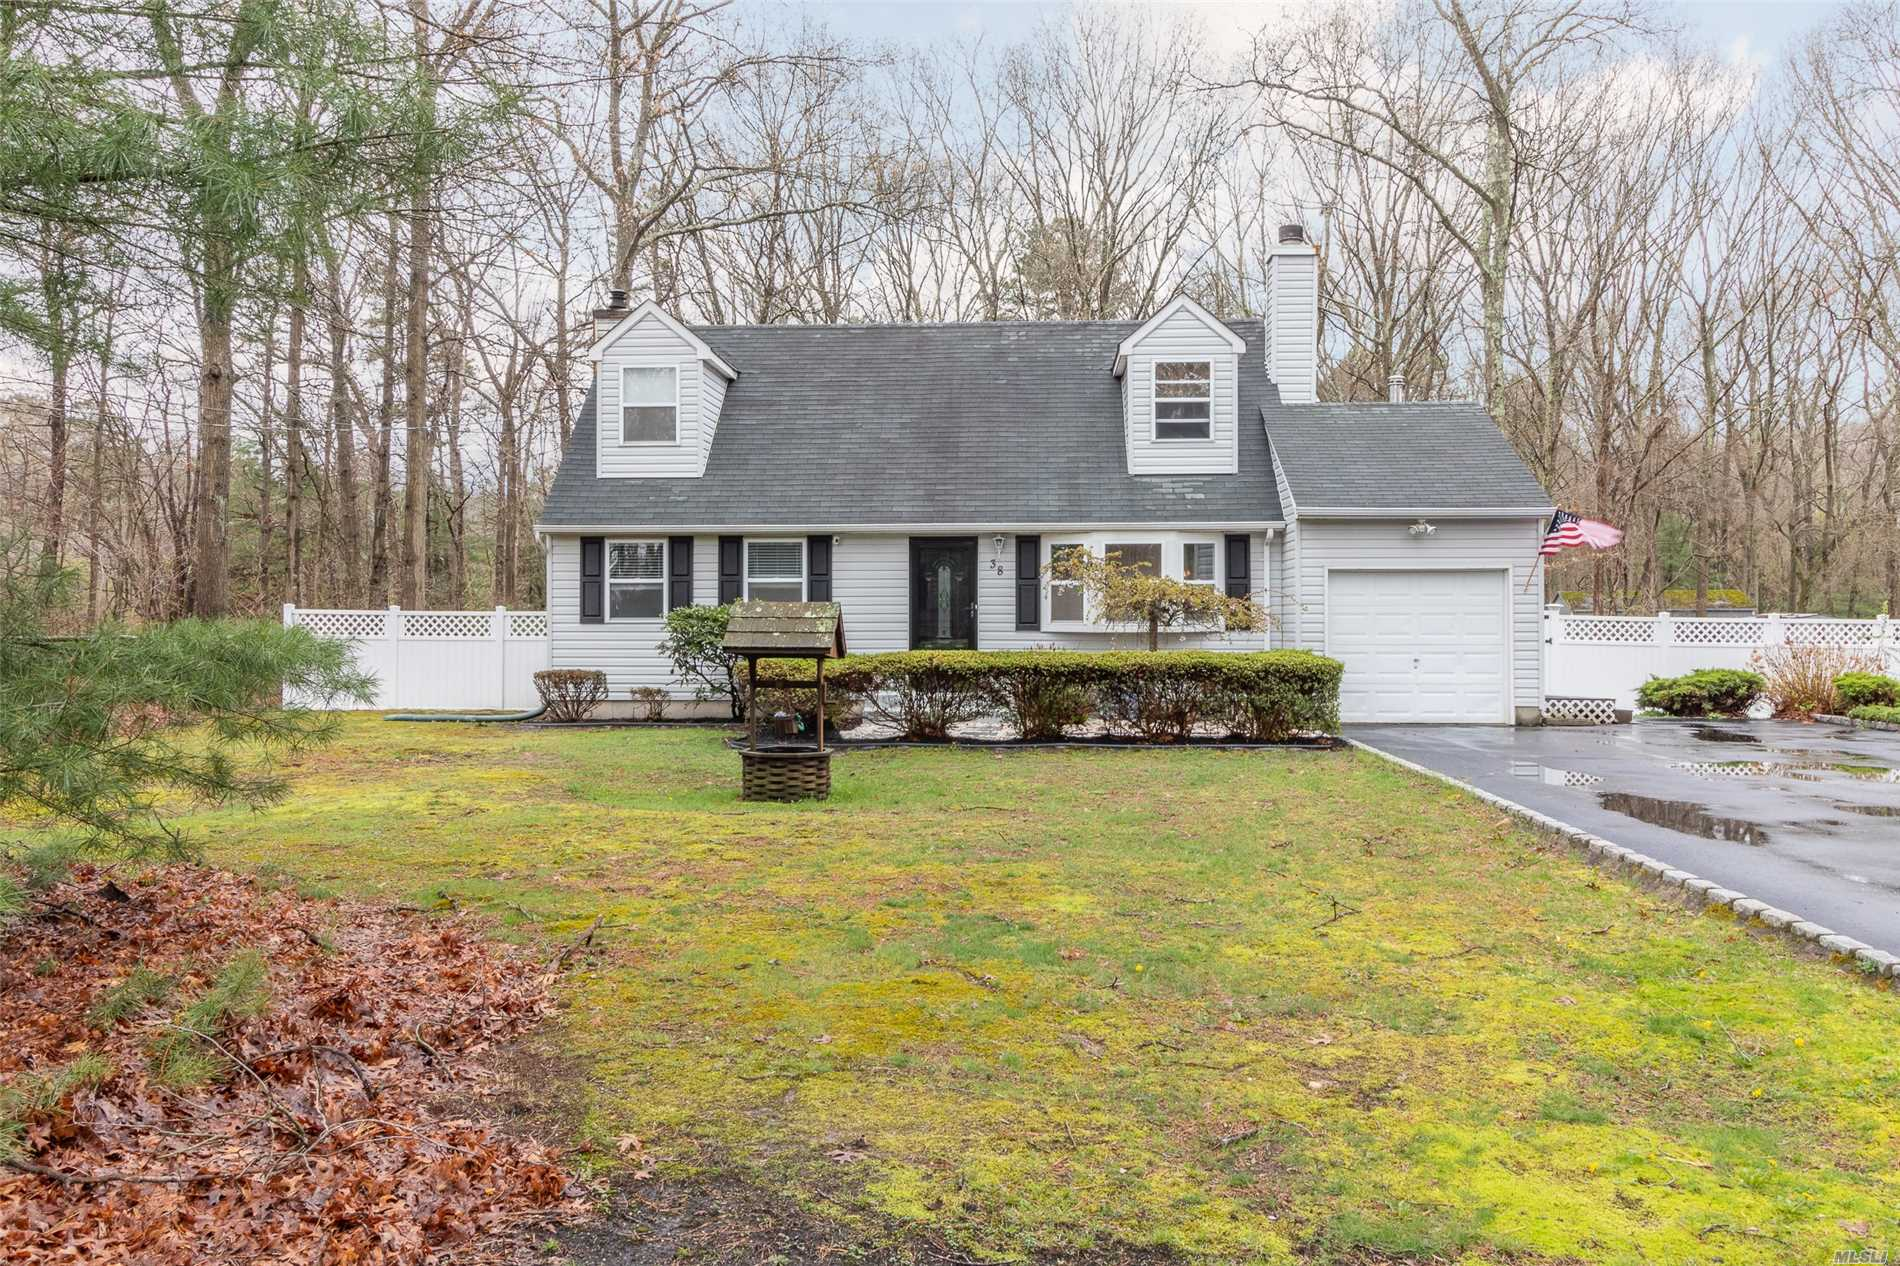 Absolutely fantastic charming 1 owner Caper on shy wooded acre on cul-de-sac. Living Room w/fireplace, Kitchen with maple cabinets, granite counter tops and stainless steel appliances, 4th Bedroom/Office, 2 Full Baths, dry well. Taxes with basic star $9314.15